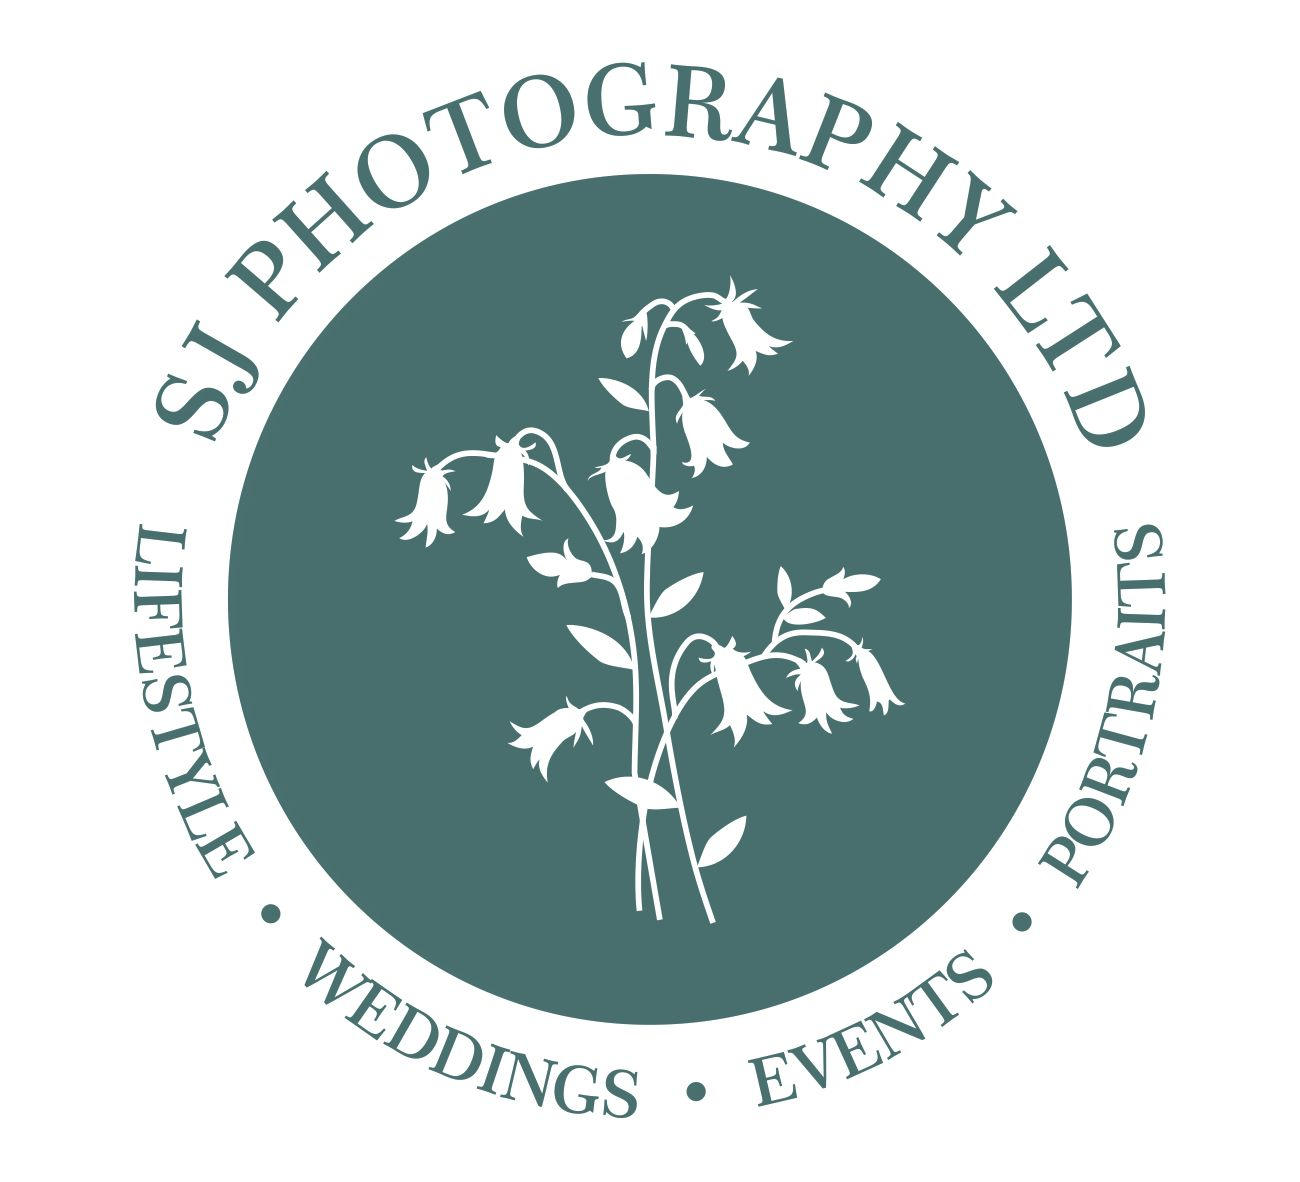 SJ Photography, logo, Tapestry, Lifestyle, Weddings, Events, Portraits